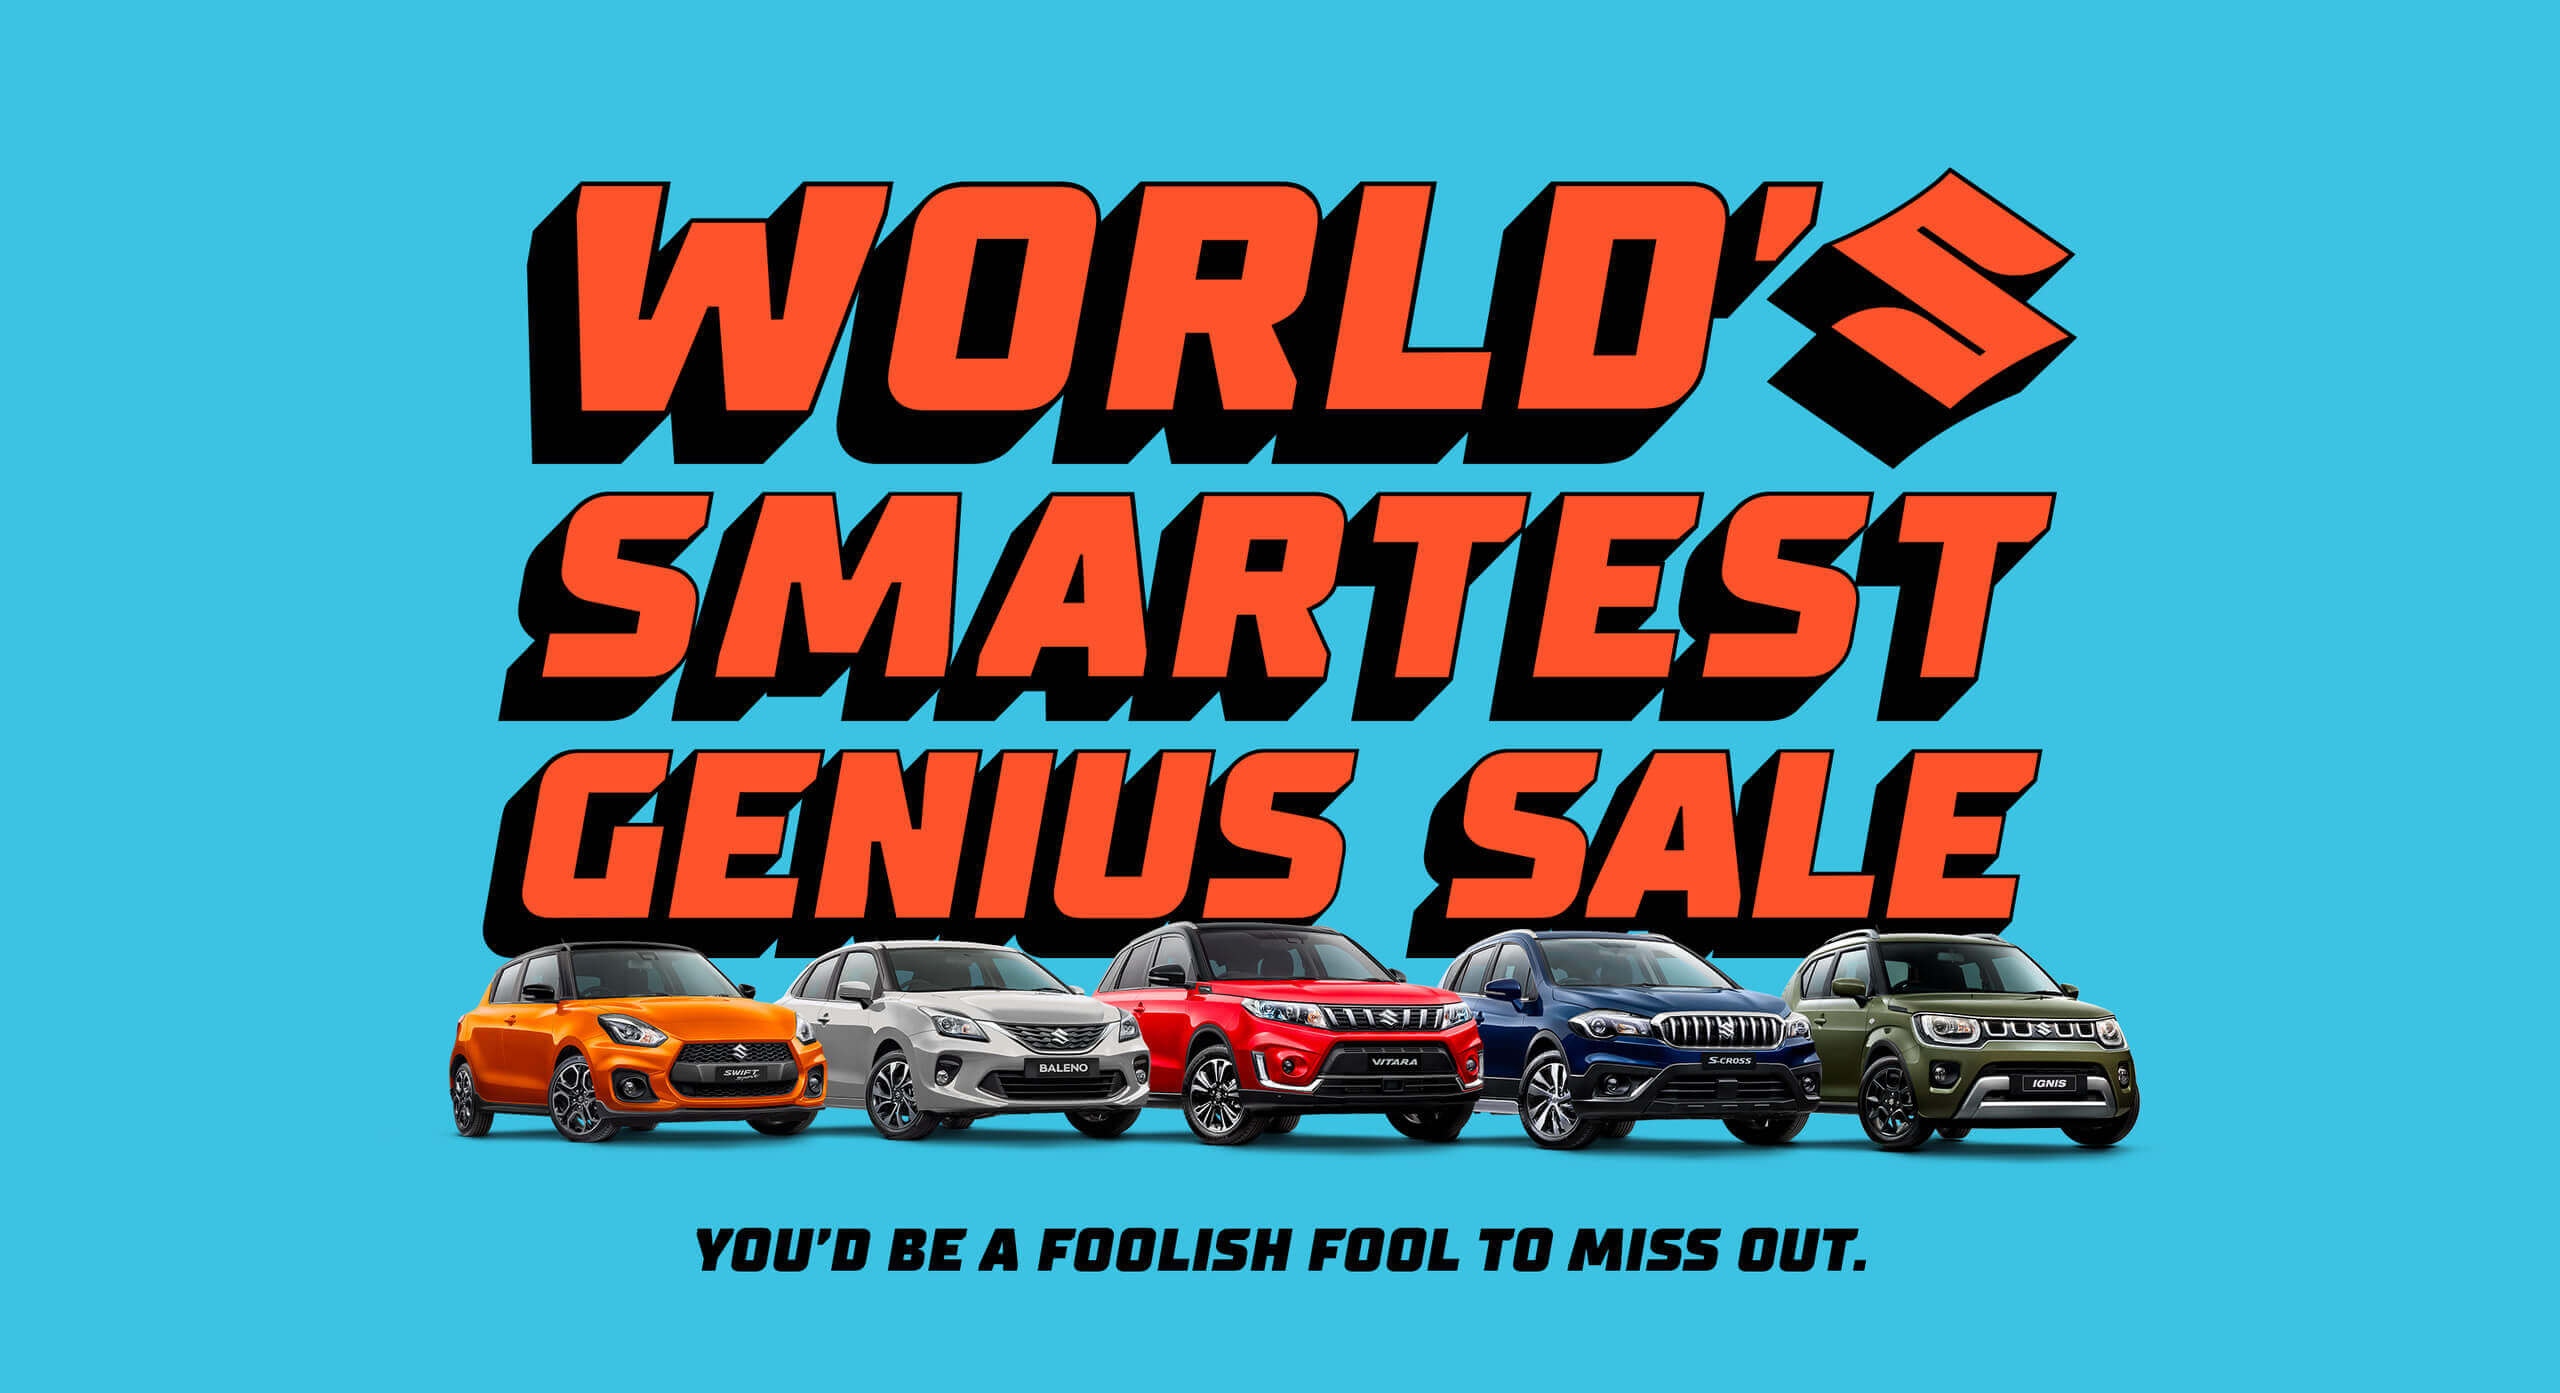 World's Smartest Genius Sale. You'd be a foolish fool to miss out.